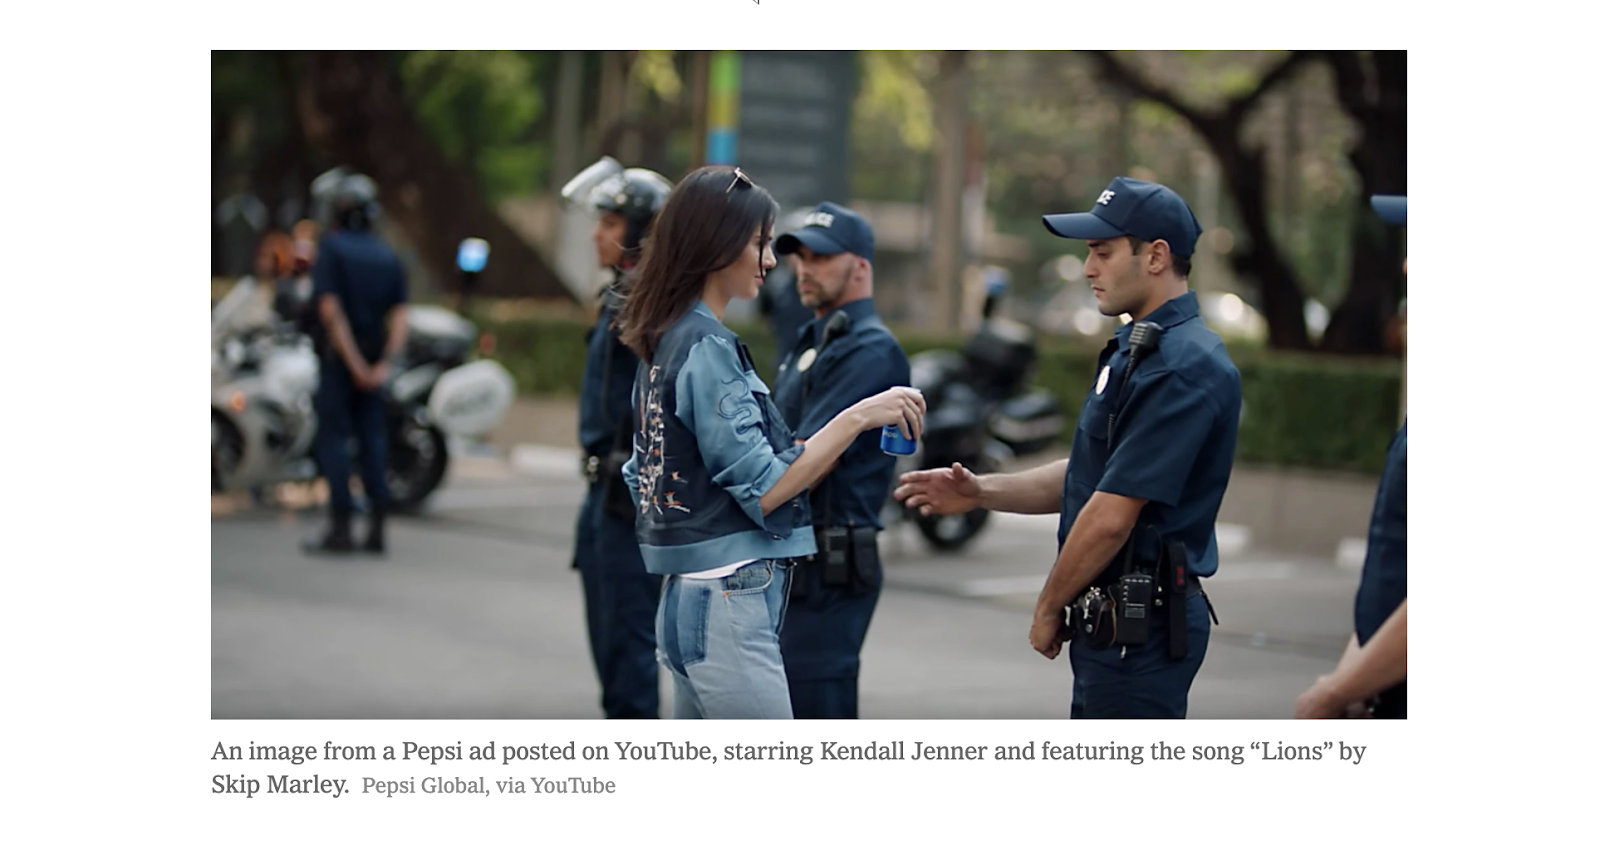 Kendall Jenner stars in Pepsi ad